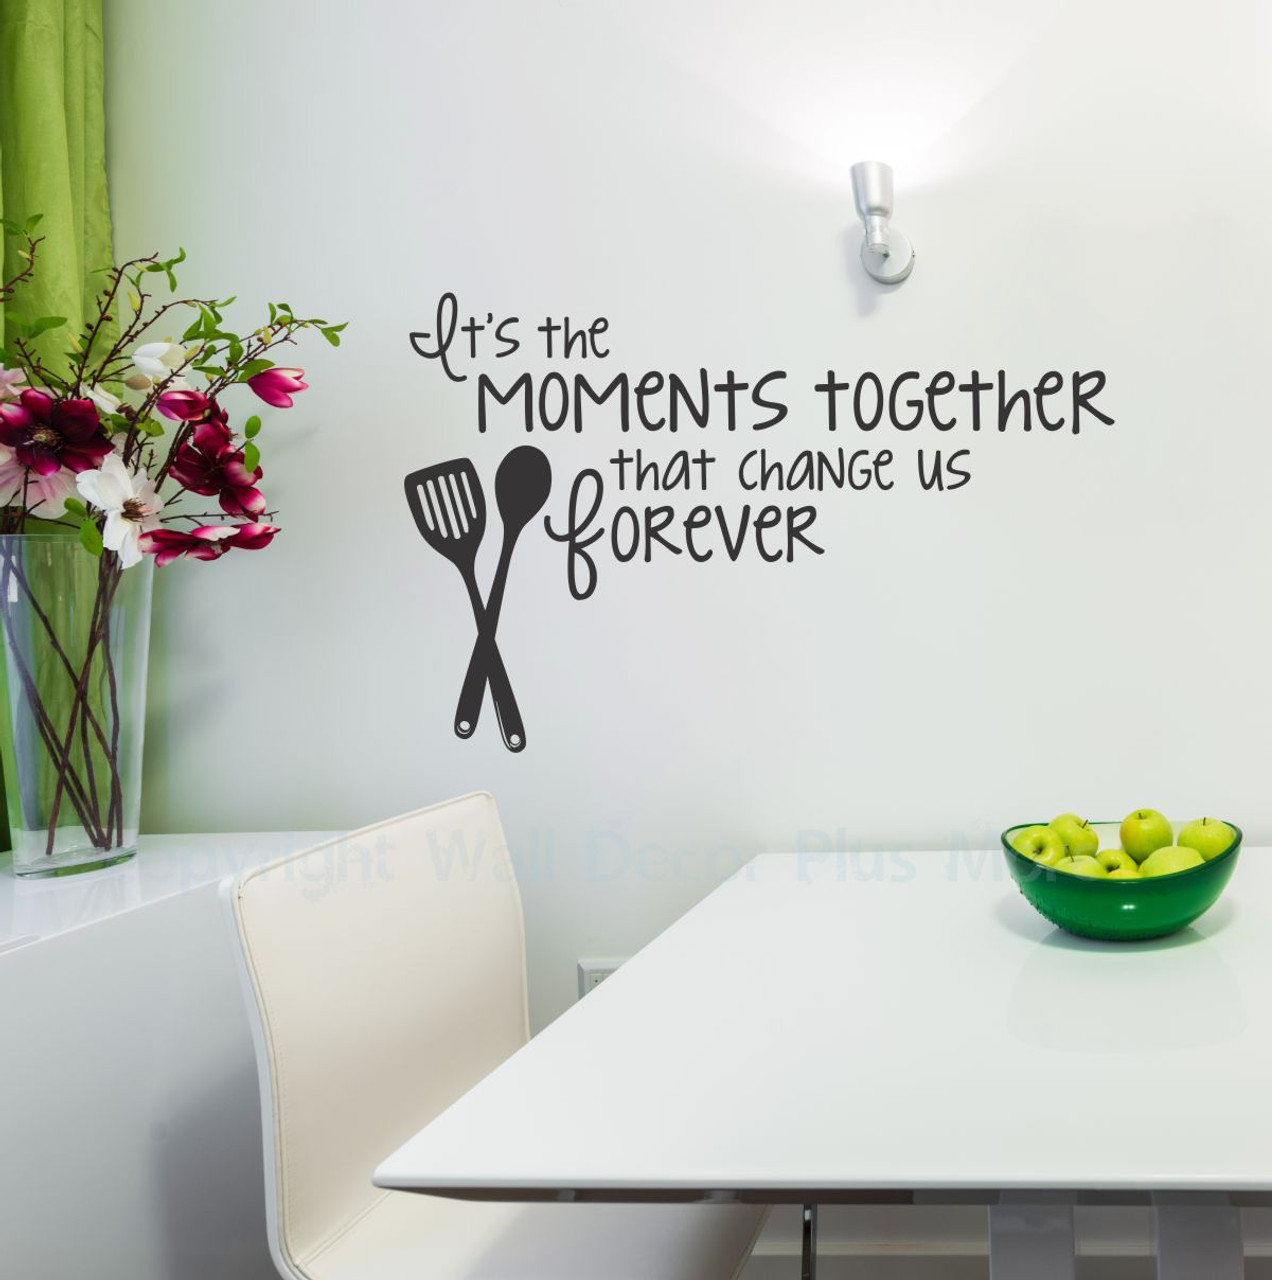 Vinyl Decals For The Kitchen, Itu0027s The Moments Together That Change Us  Forever, Kitchen